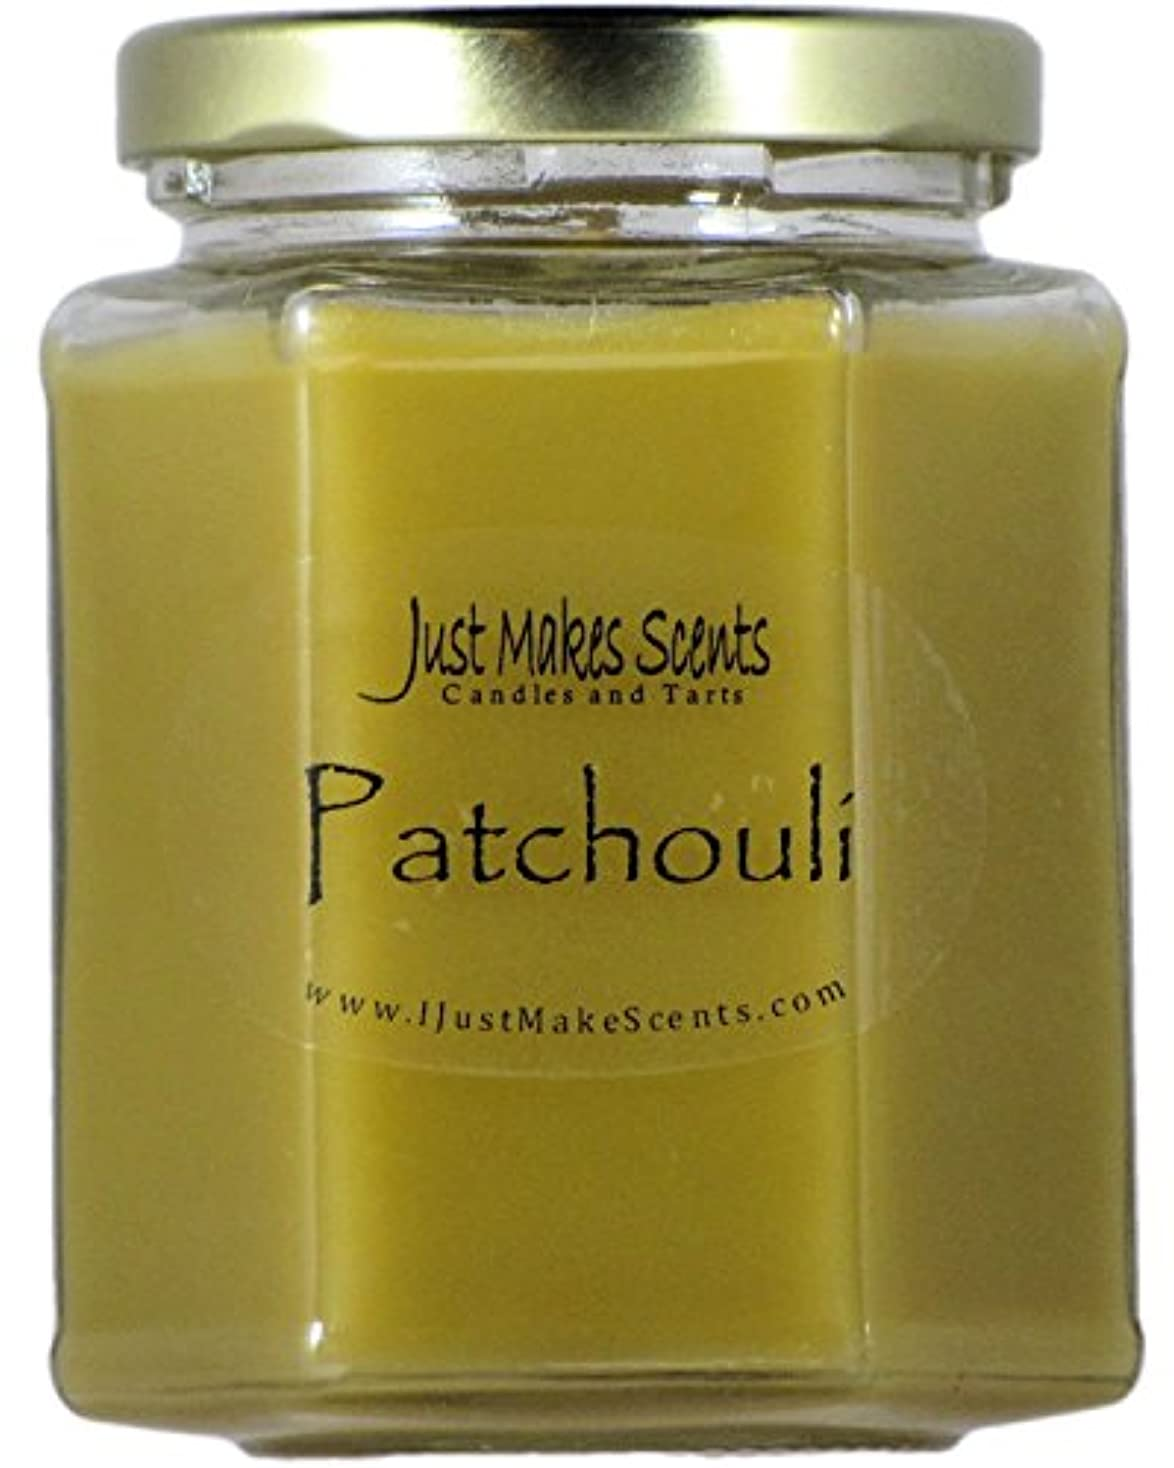 スーパーマーケット未接続取り組むPatchouli Scented Blended Soy Candle by Just Makes Scents (270ml)